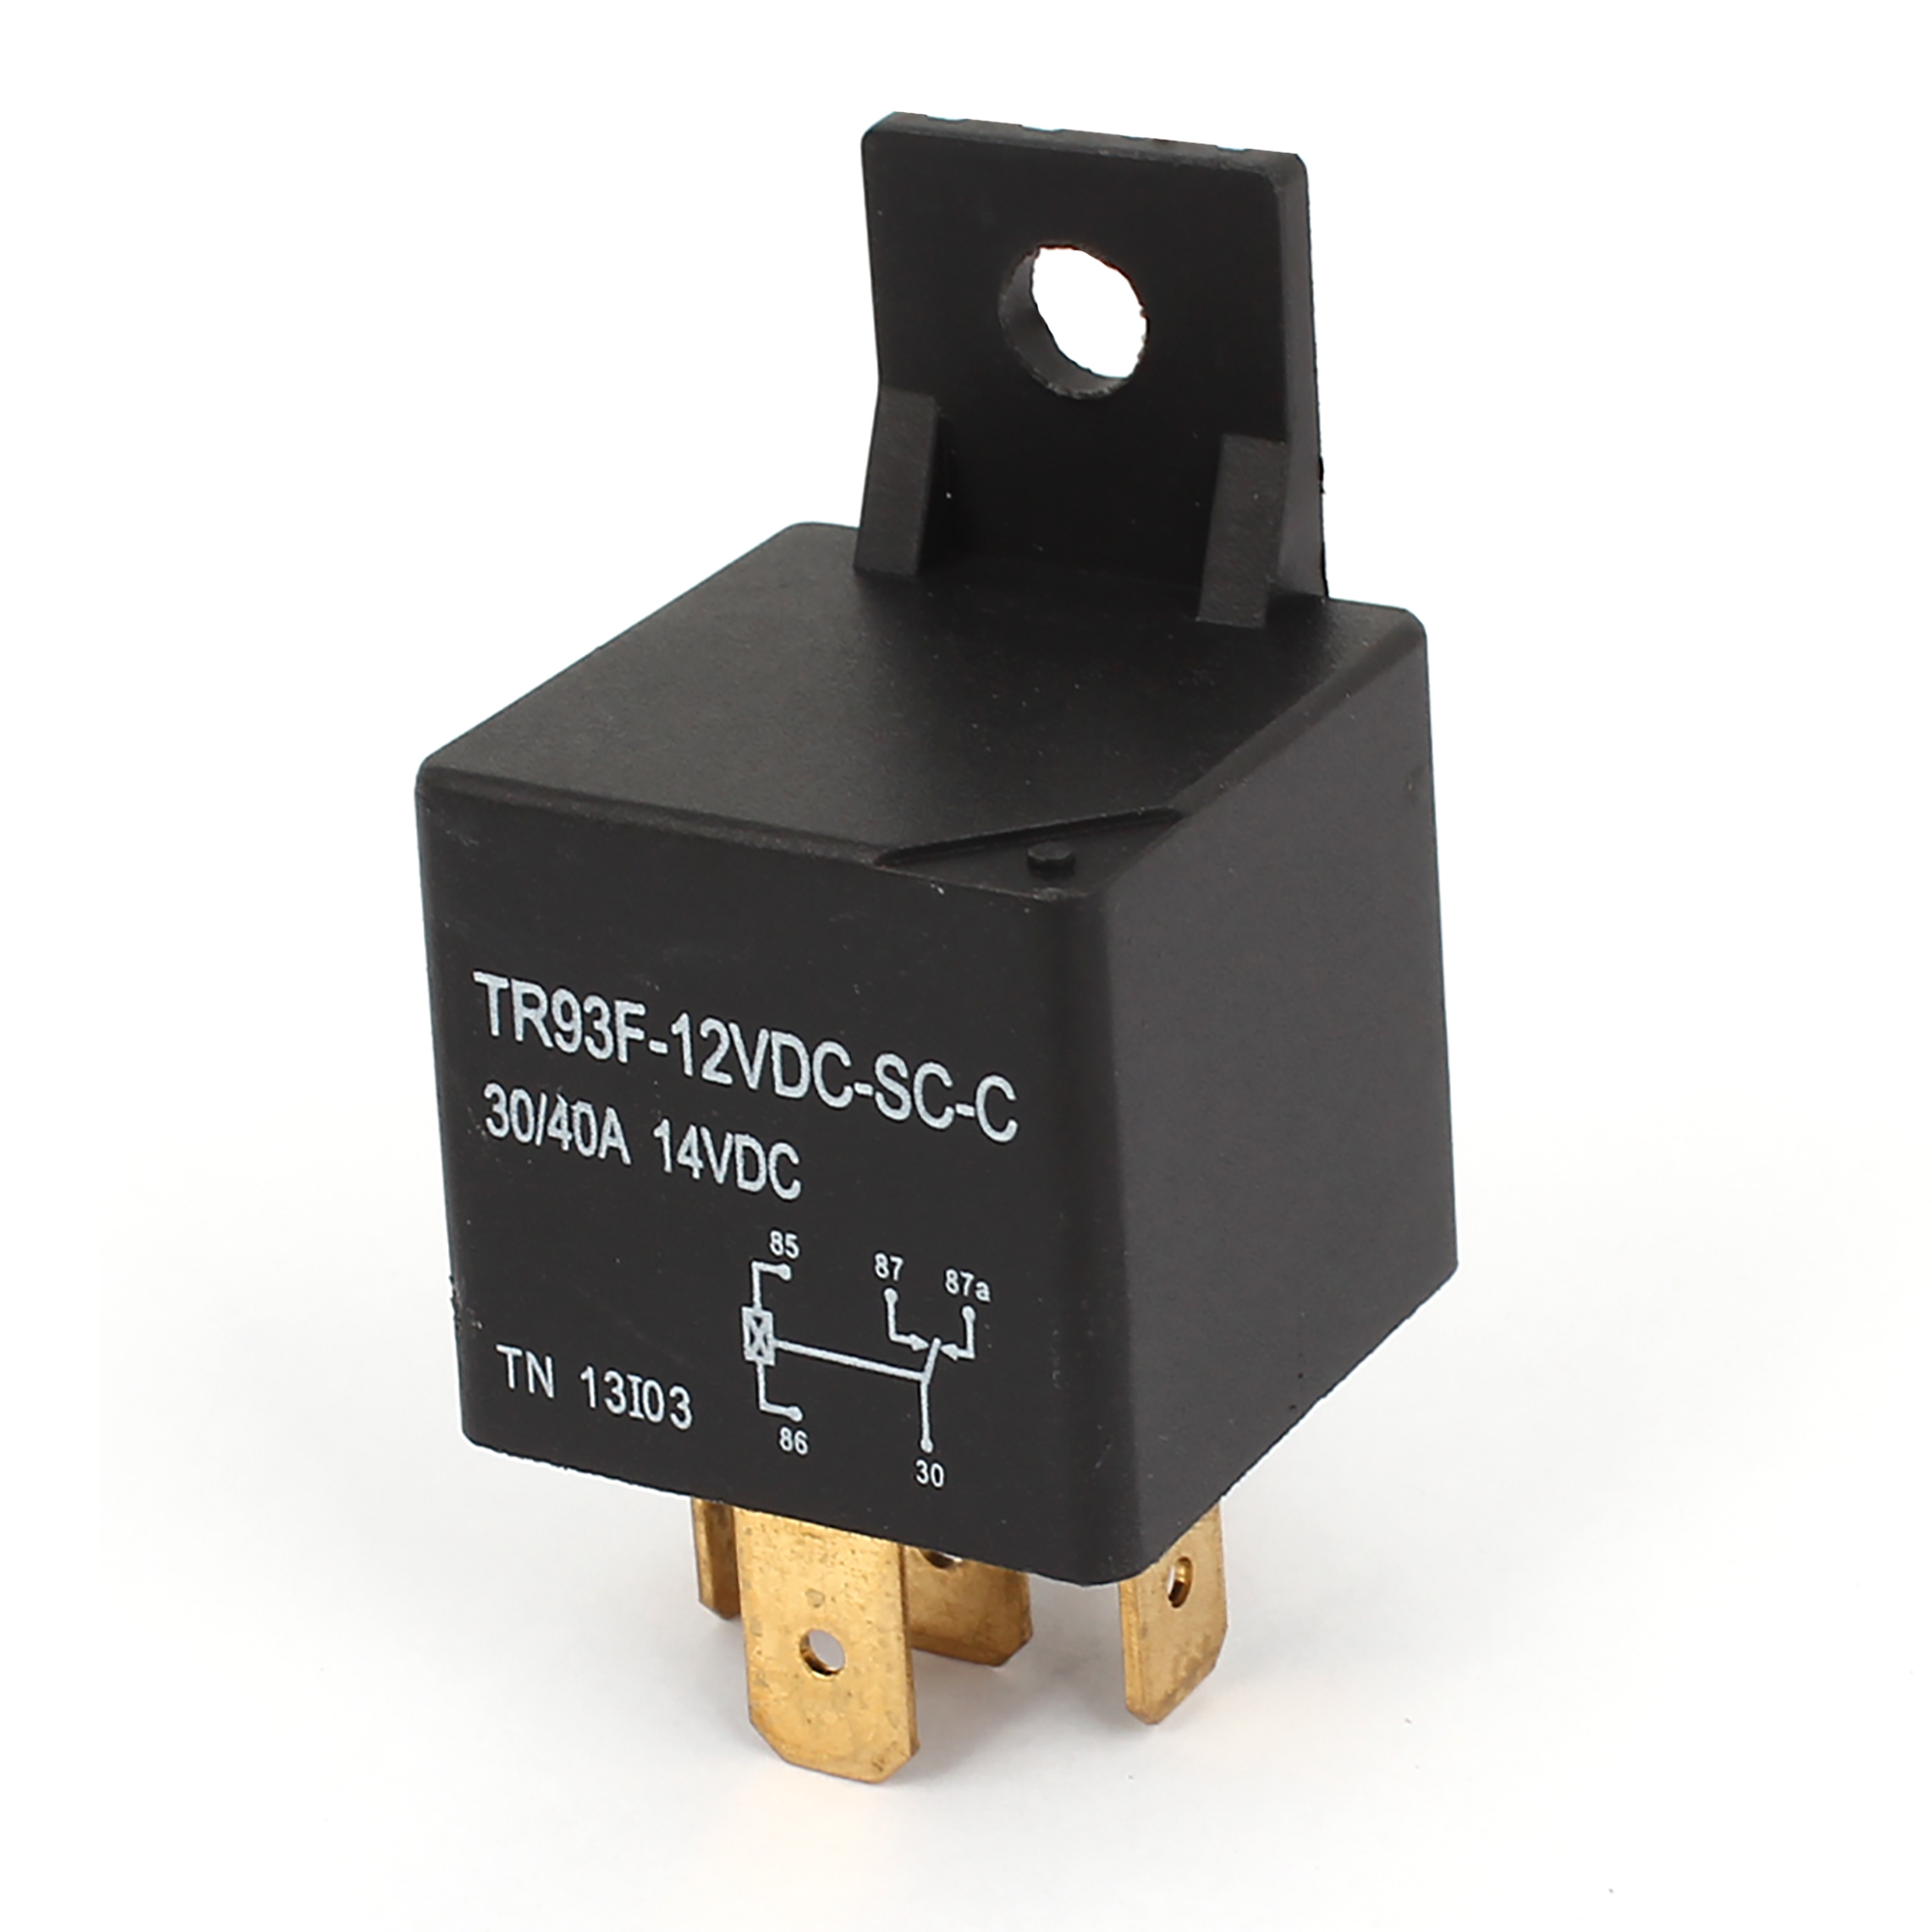 TR93F-12VDC-SC-C DC 12V Coil 5 Pins Car Auto Power Relay Black